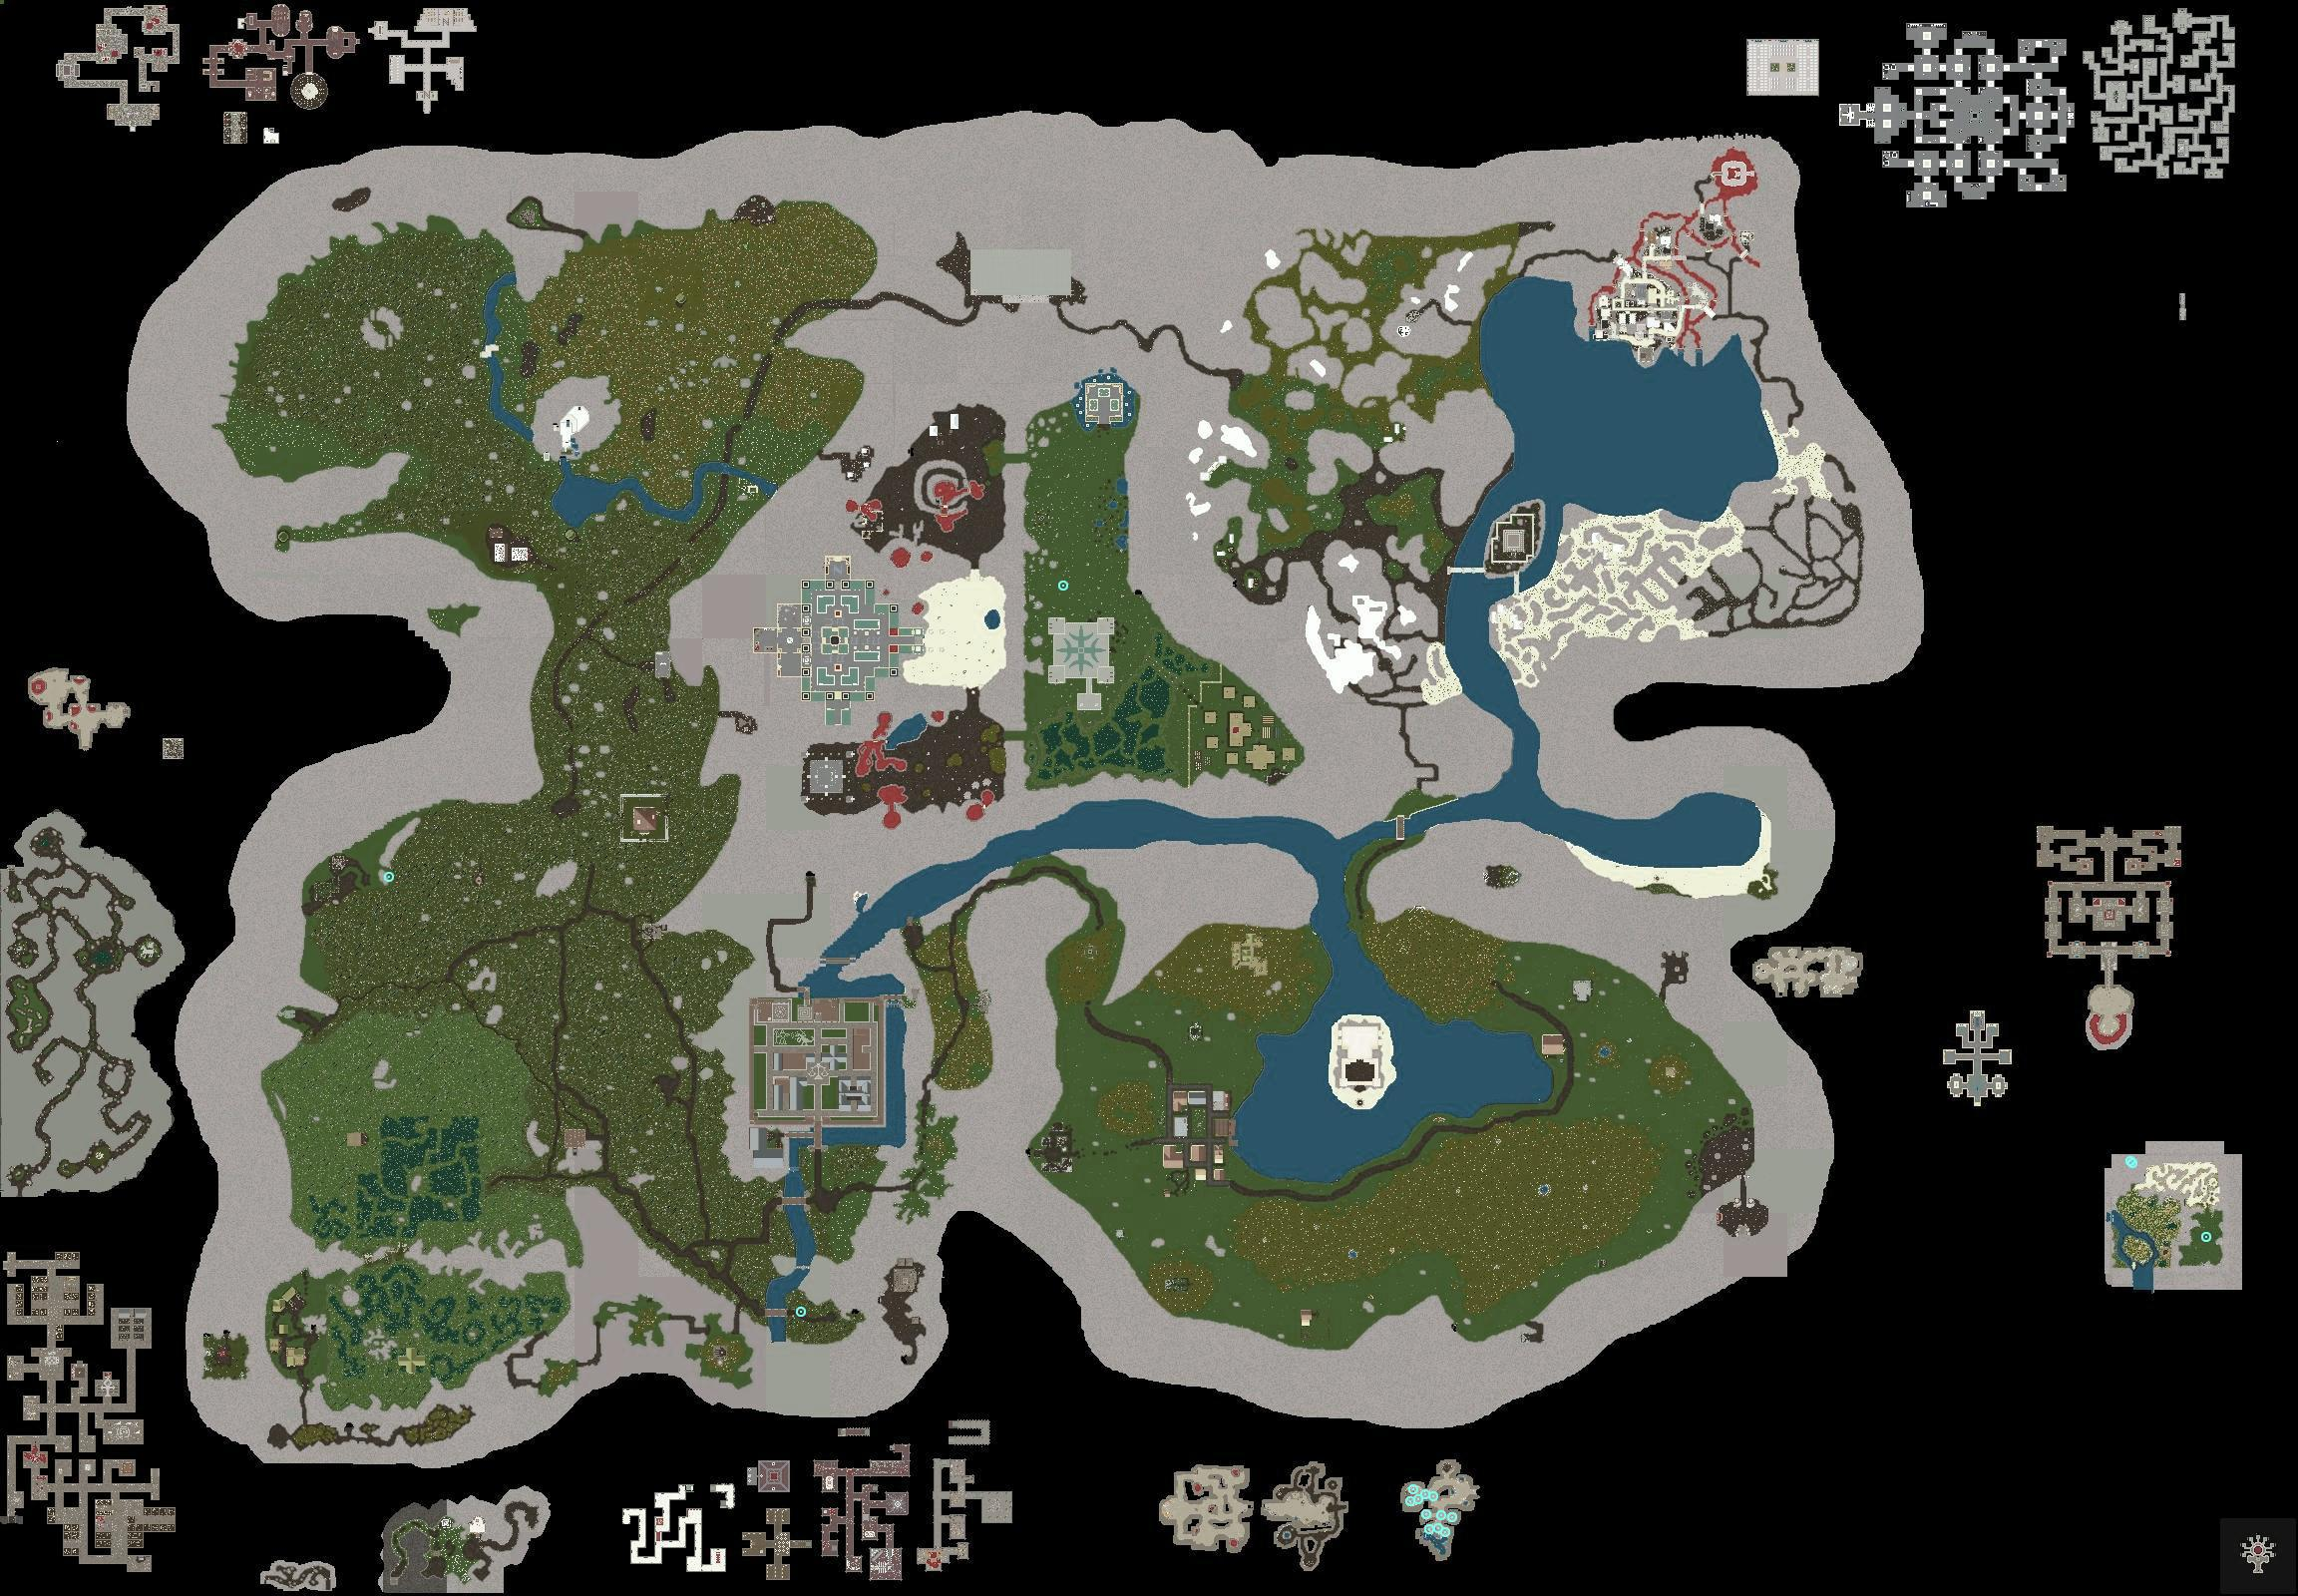 Ultima Online Ultima Online World Maps The Abyss The Abyss